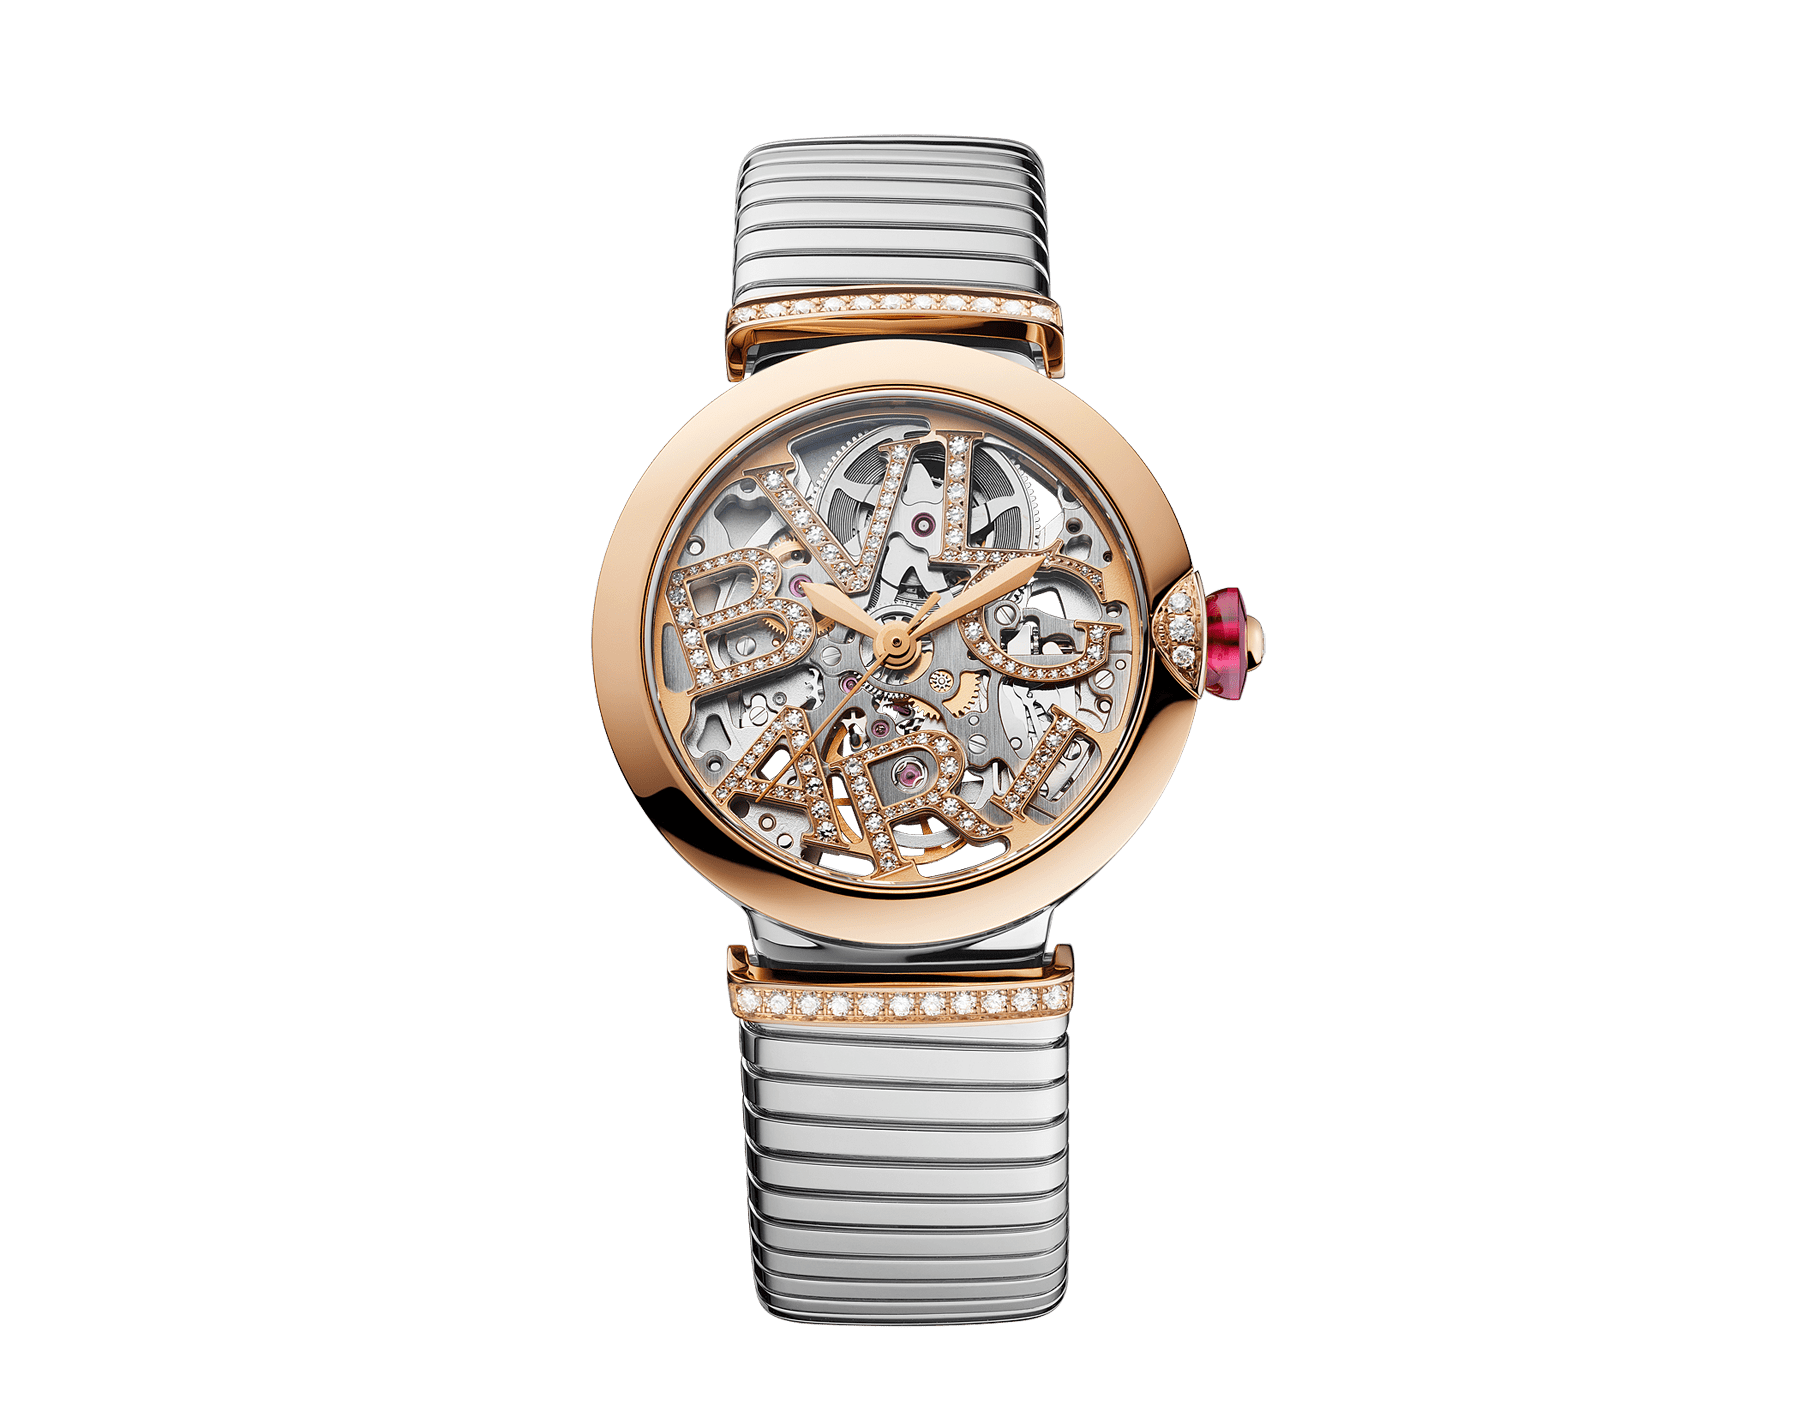 LVCEA Skeleton watch with mechanical movement, automatic winding, stainless steel case, 18 kt rose gold bezel with diamond detail, 18 kt rose gold openwork BVLGARI logo dial and links both set with round brilliant-cut diamonds, and stainless steel tubogas bracelet 103093 image 1